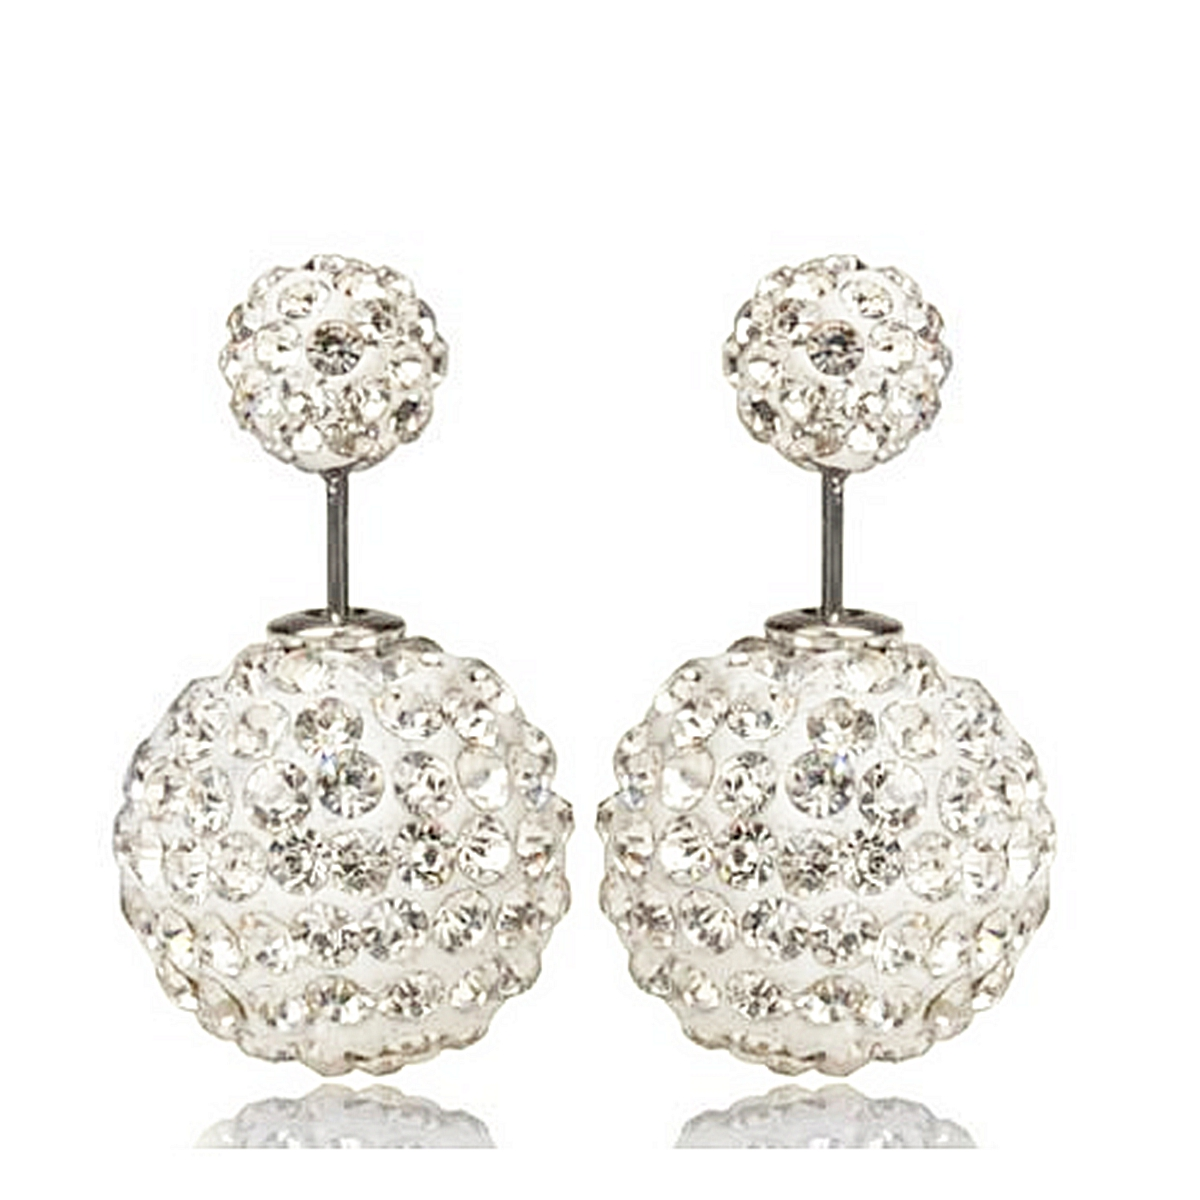 boucles d 39 oreilles boule cristal double perle clous dormeuse puces bijoux femme ebay. Black Bedroom Furniture Sets. Home Design Ideas